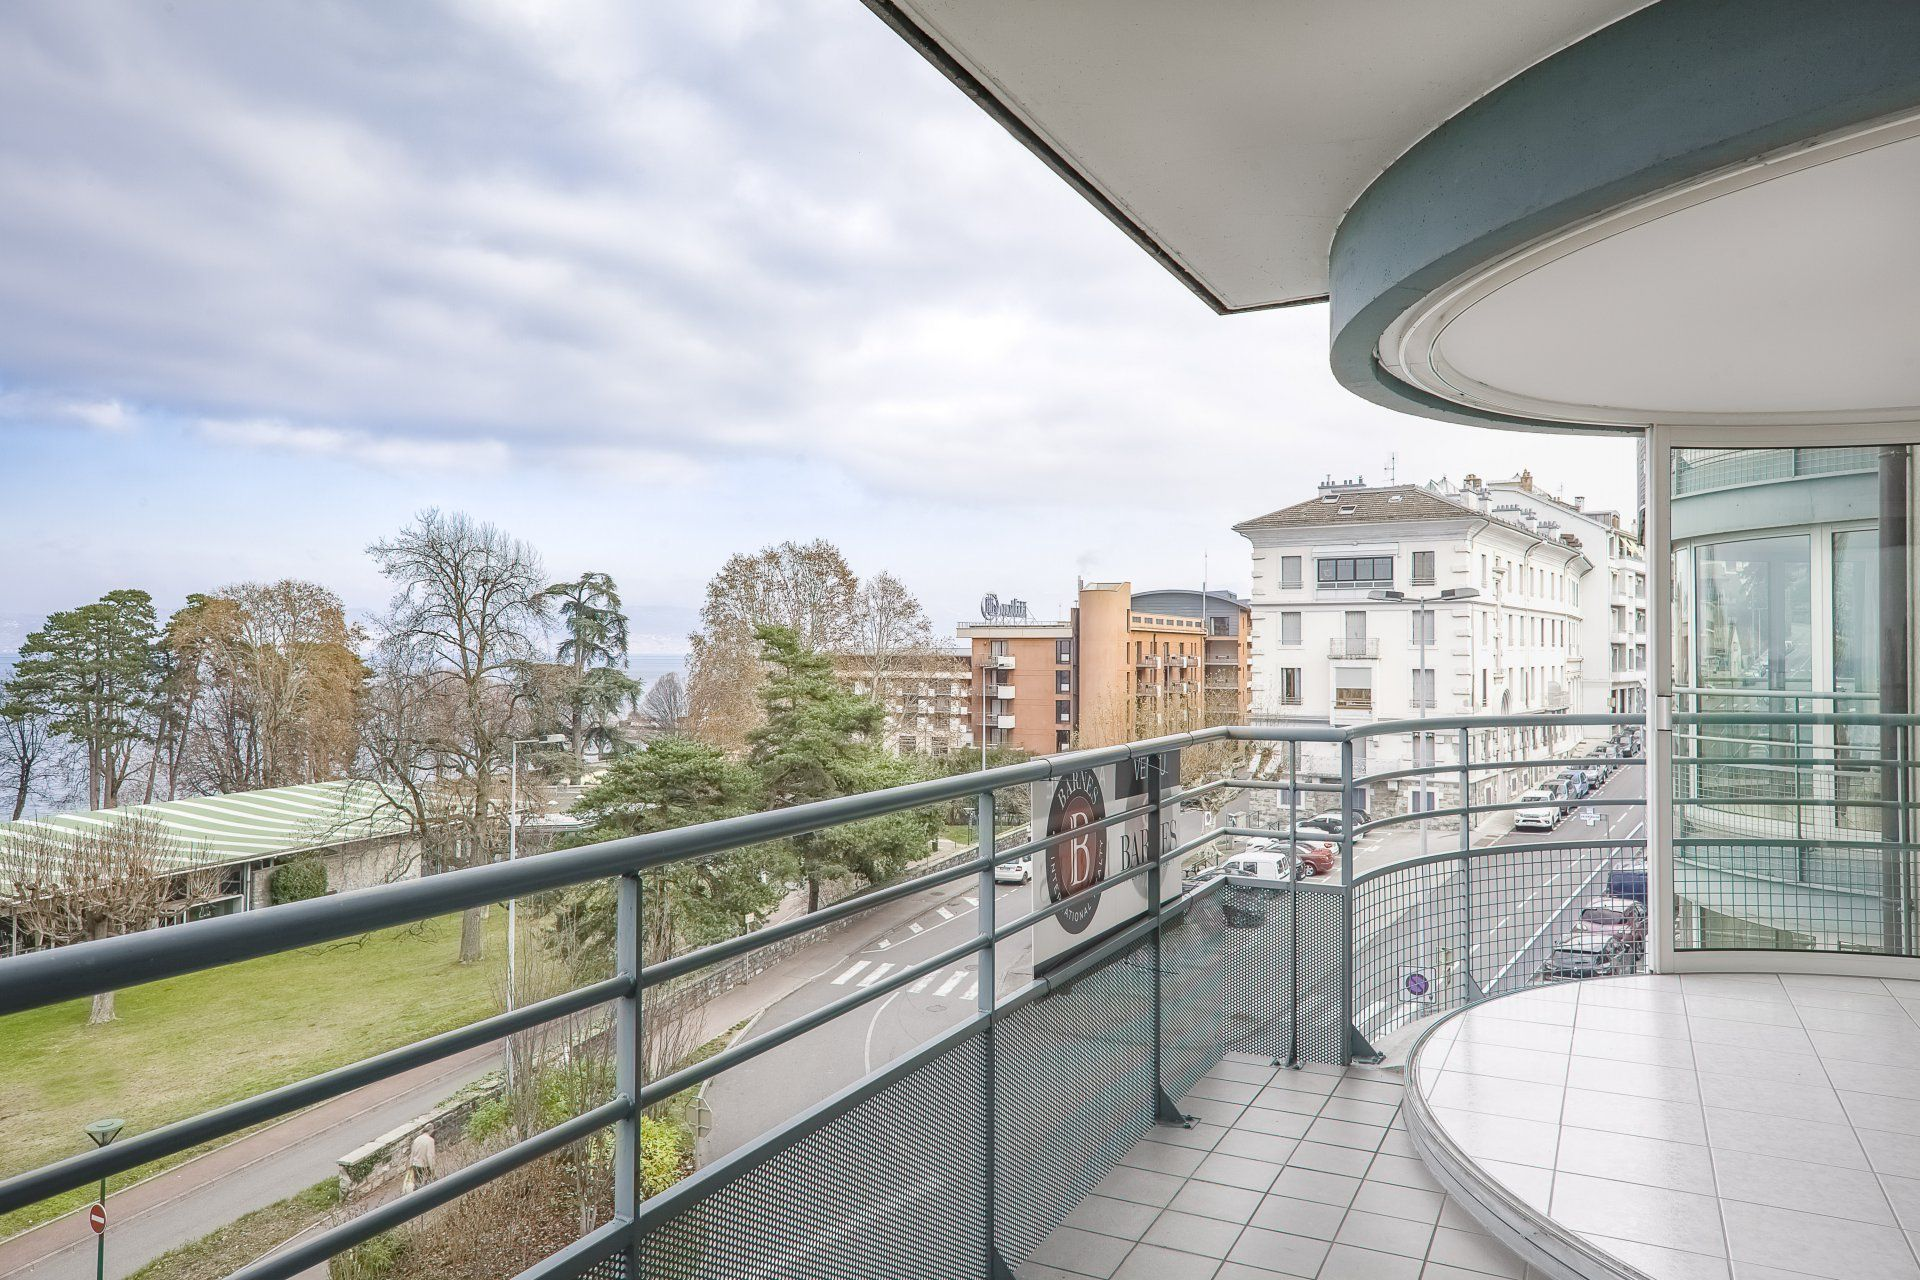 Exclusive - Evian-les-bains - Downtown - Apartment of 58 sq. m - 1 bedroom